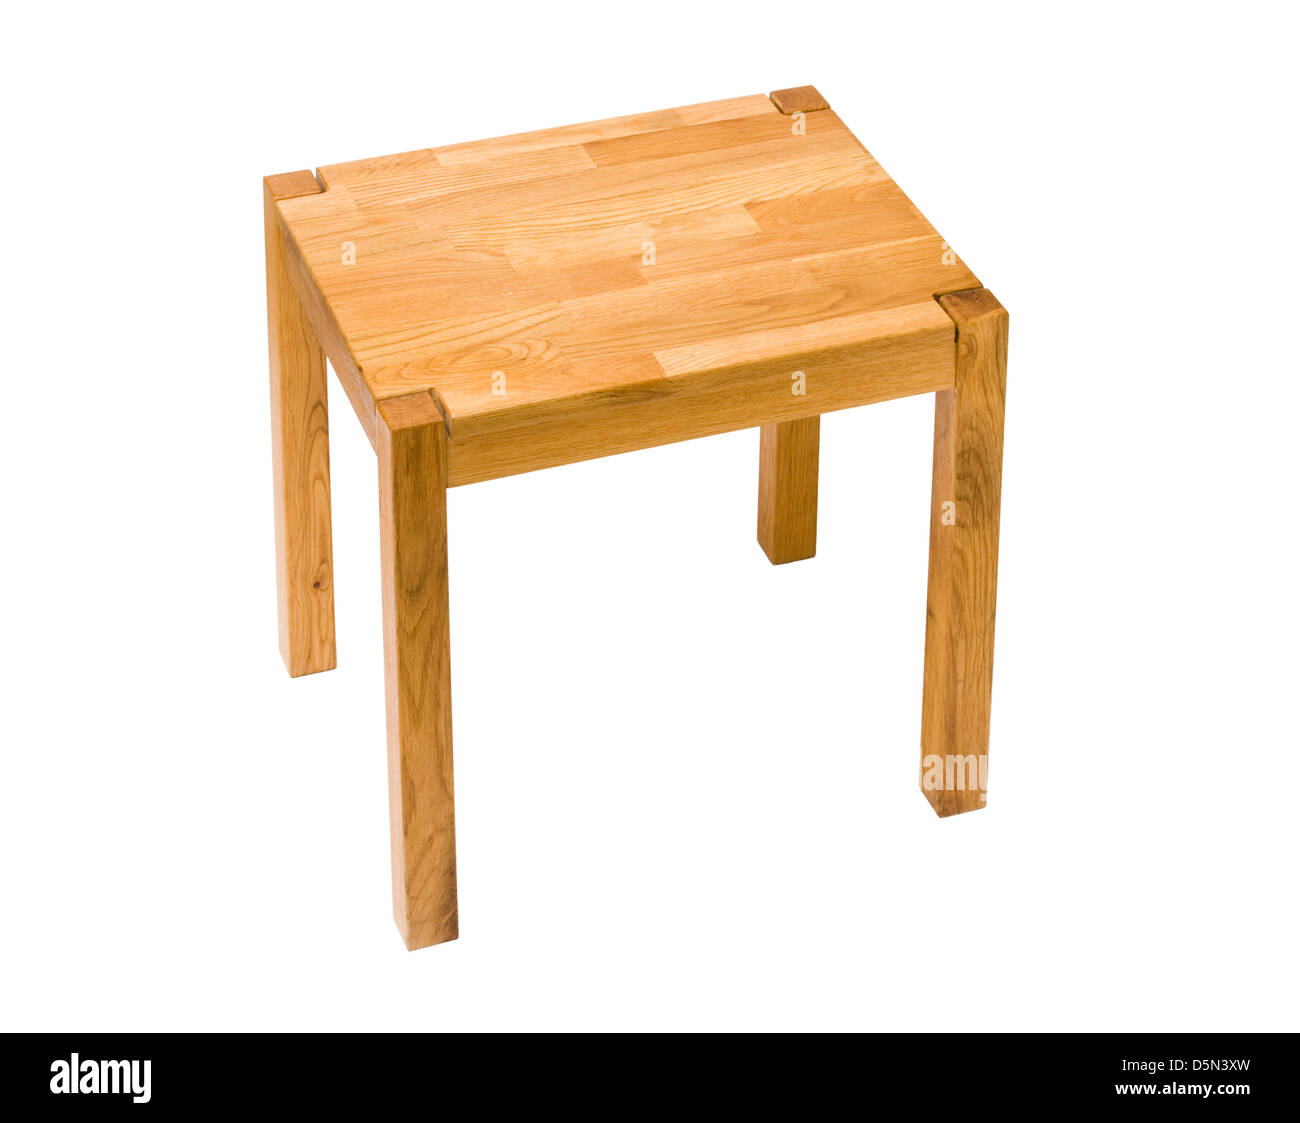 Small table. - Stock Image